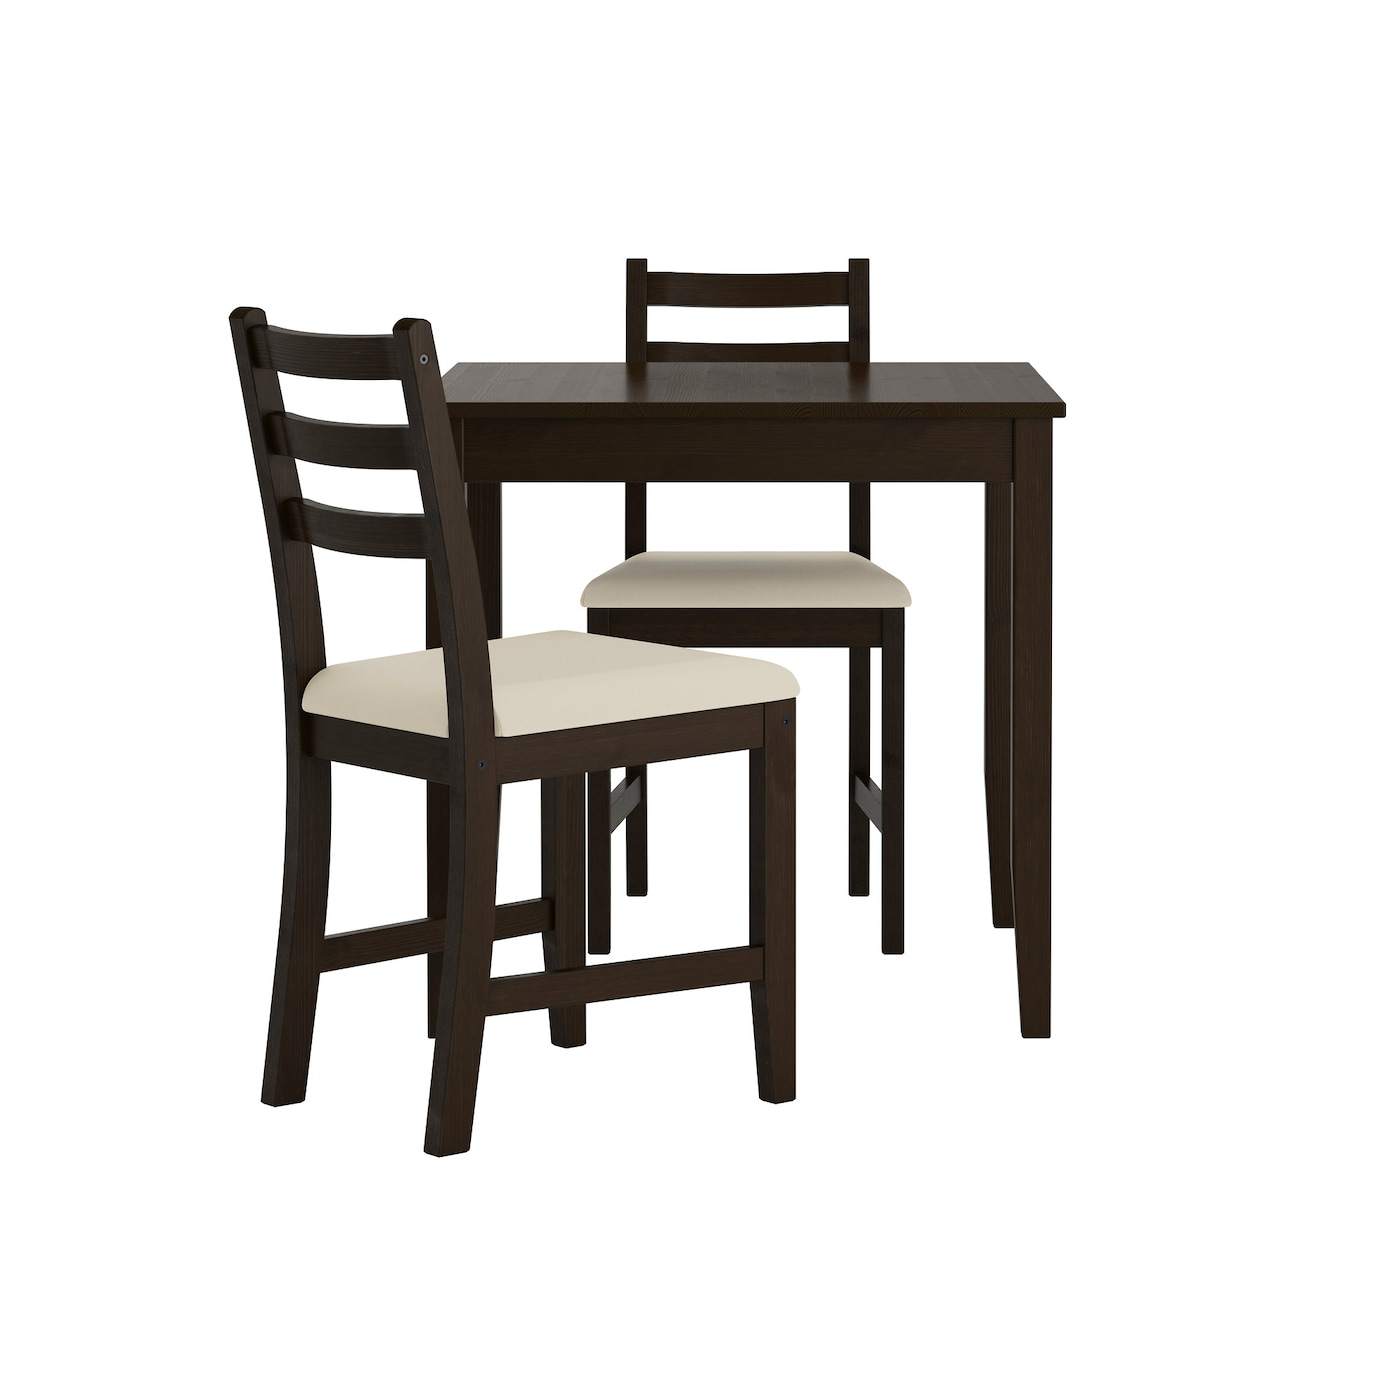 Dining table sets dining room sets ikea for Small black table and chairs